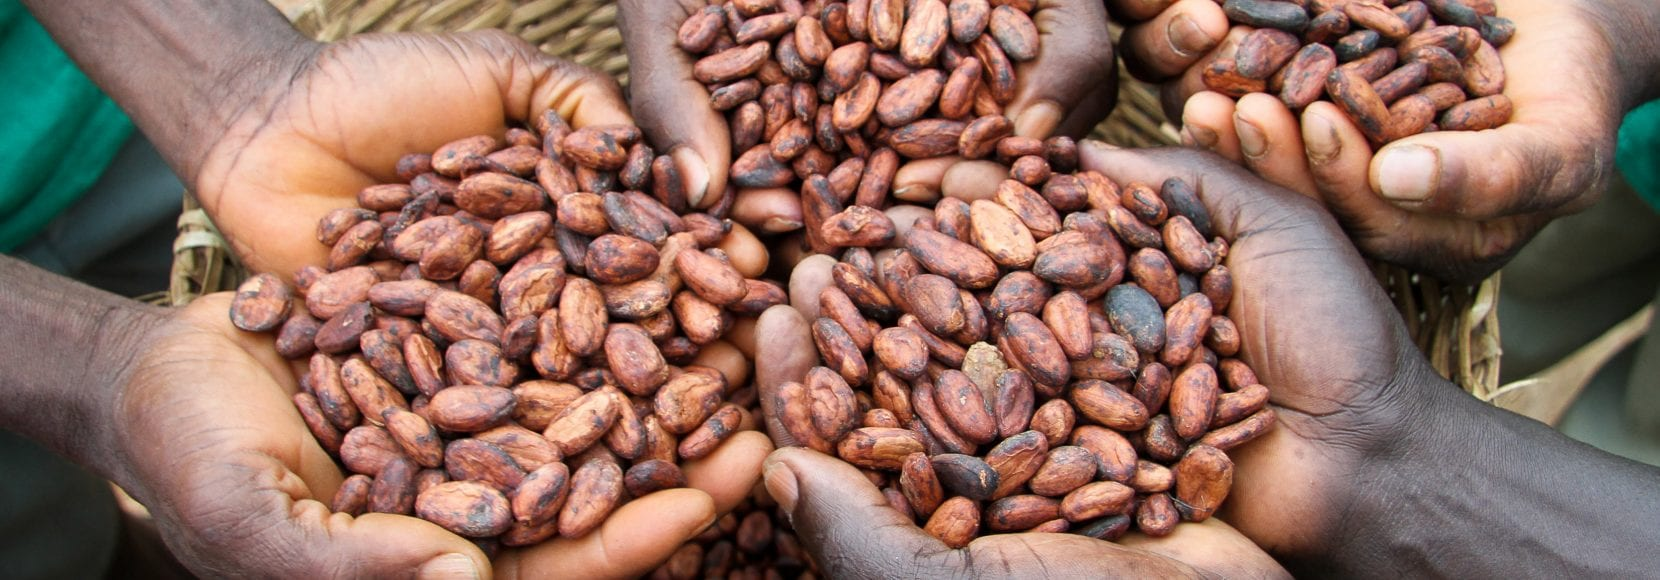 Cocoa farmers holding dried cocoa beans in Ghana